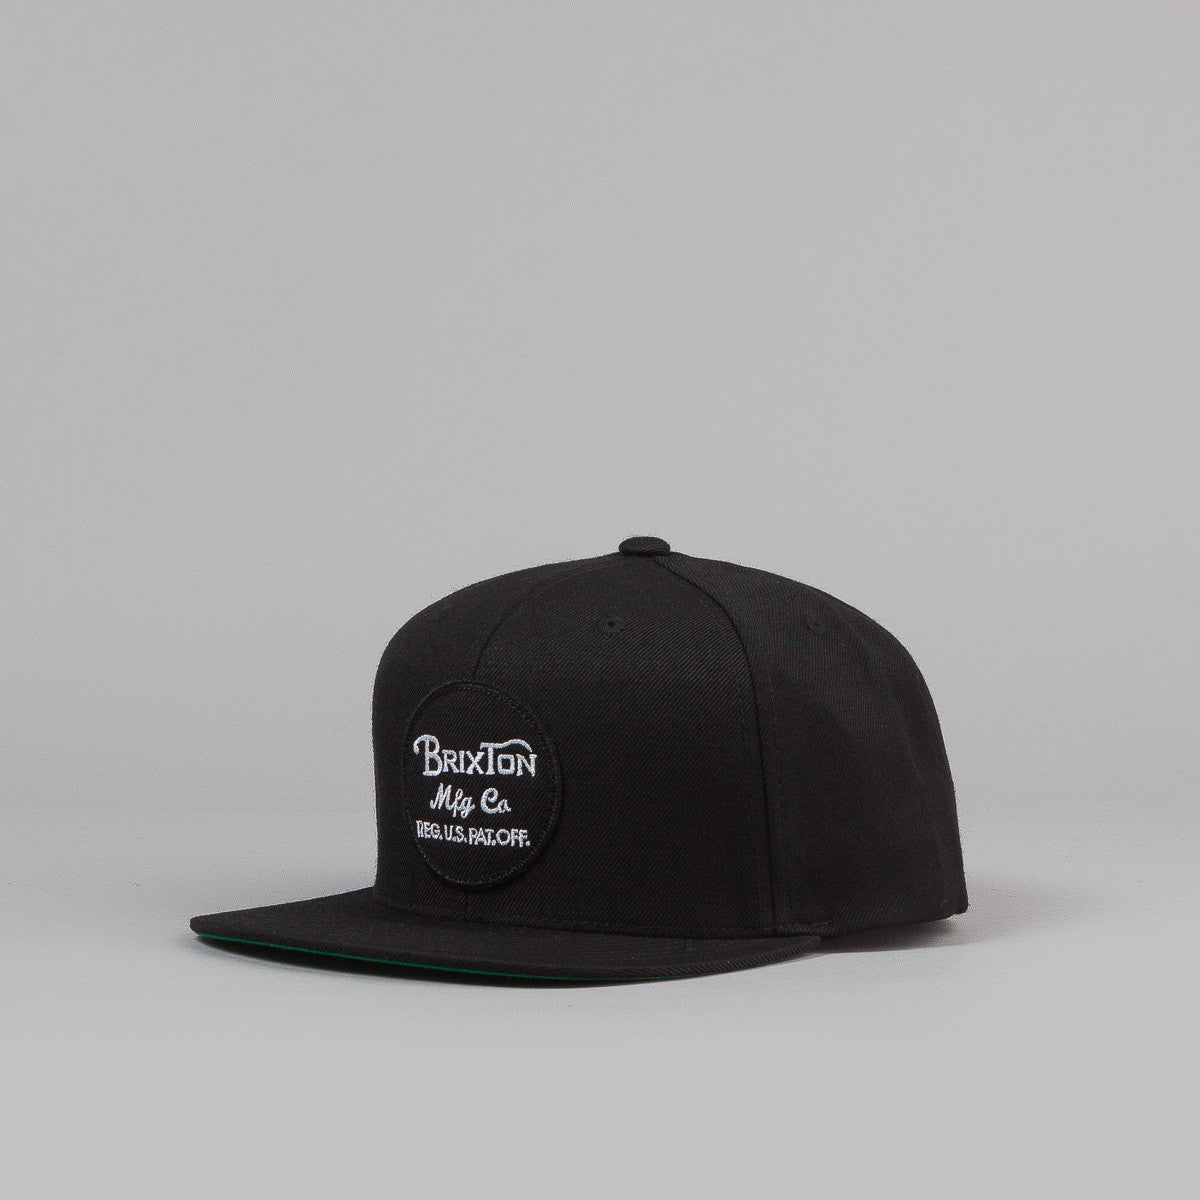 Brixton Wheeler 6-Panel Snap Back Cap - Black